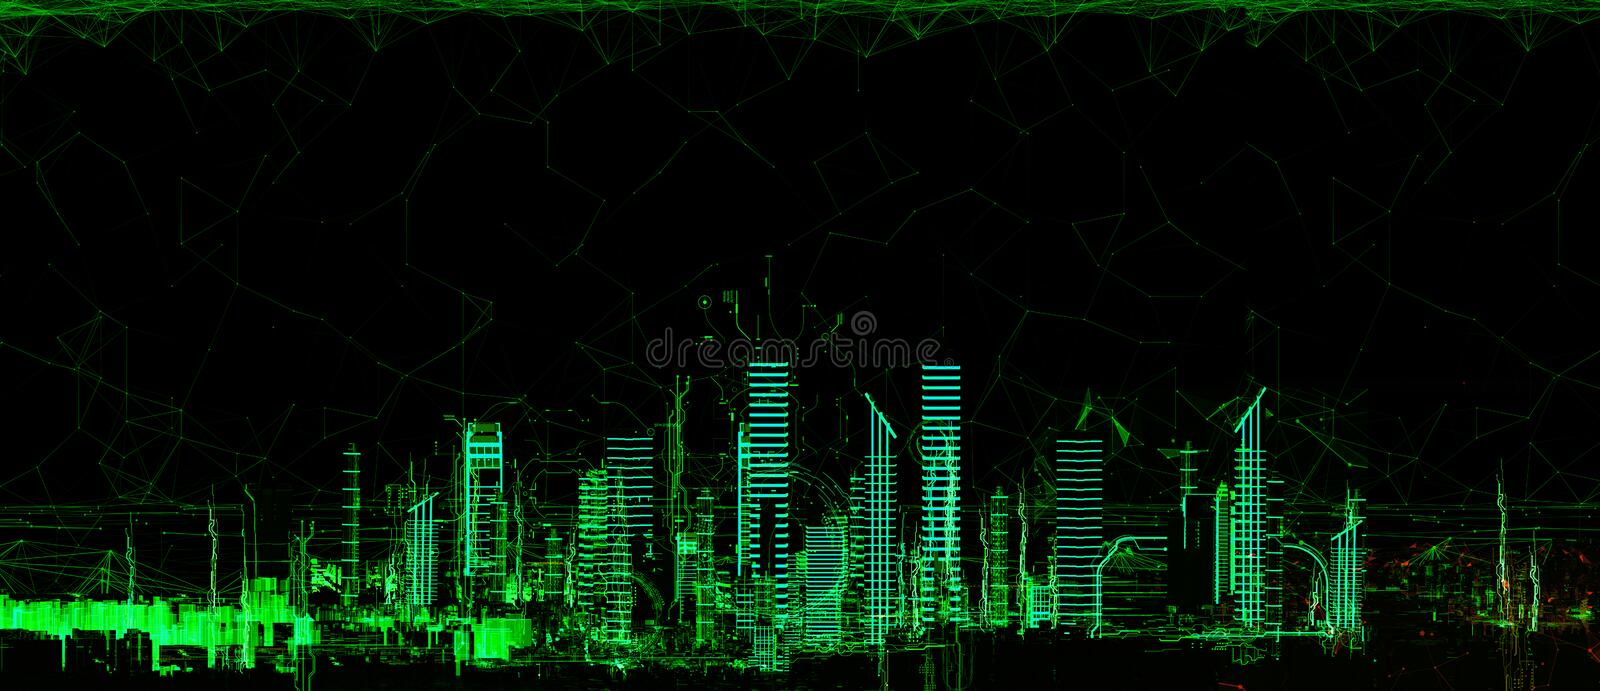 Futuristic 3d city neon light. Futuristic skyscrapers in the flow of information. The flow of digital data. city of the future 3d render. 3D illustration. The vector illustration